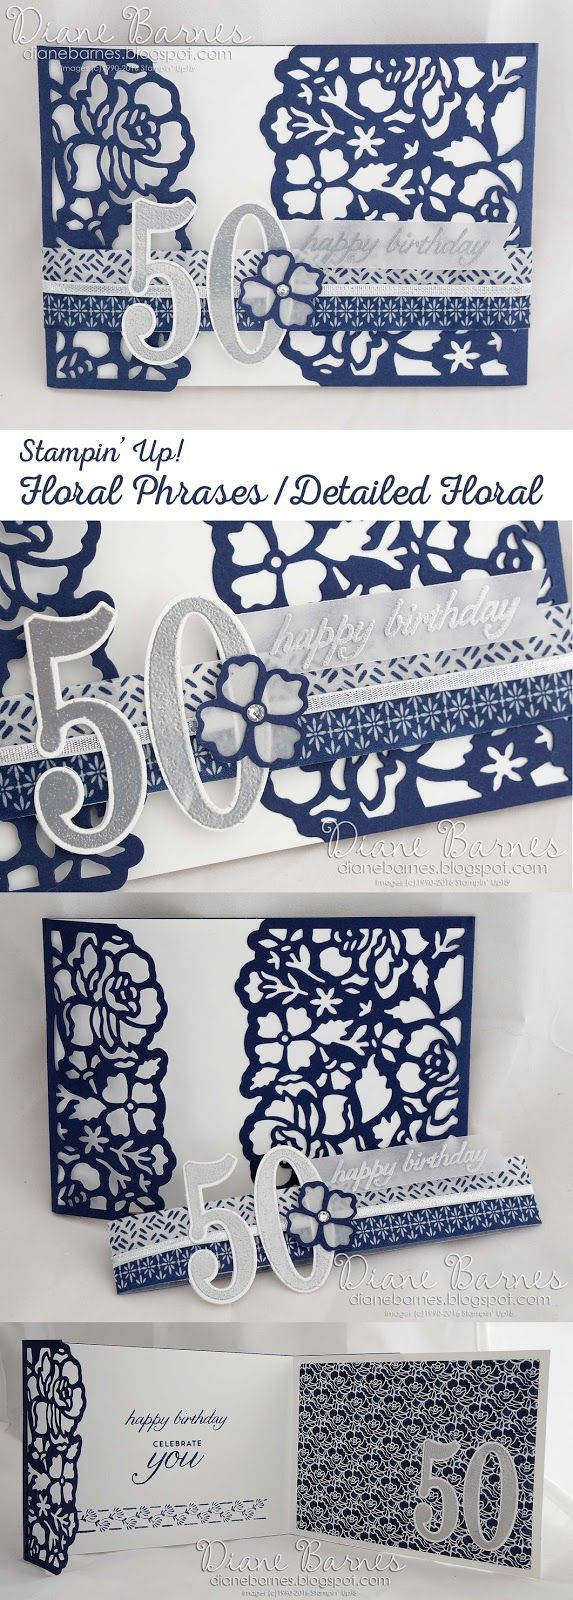 navy & white floral 50th birthday card using Stampin Up Floral Phrases / Detailed Floral bundle. 2016-17 annual catalogue. By Di Barnes…